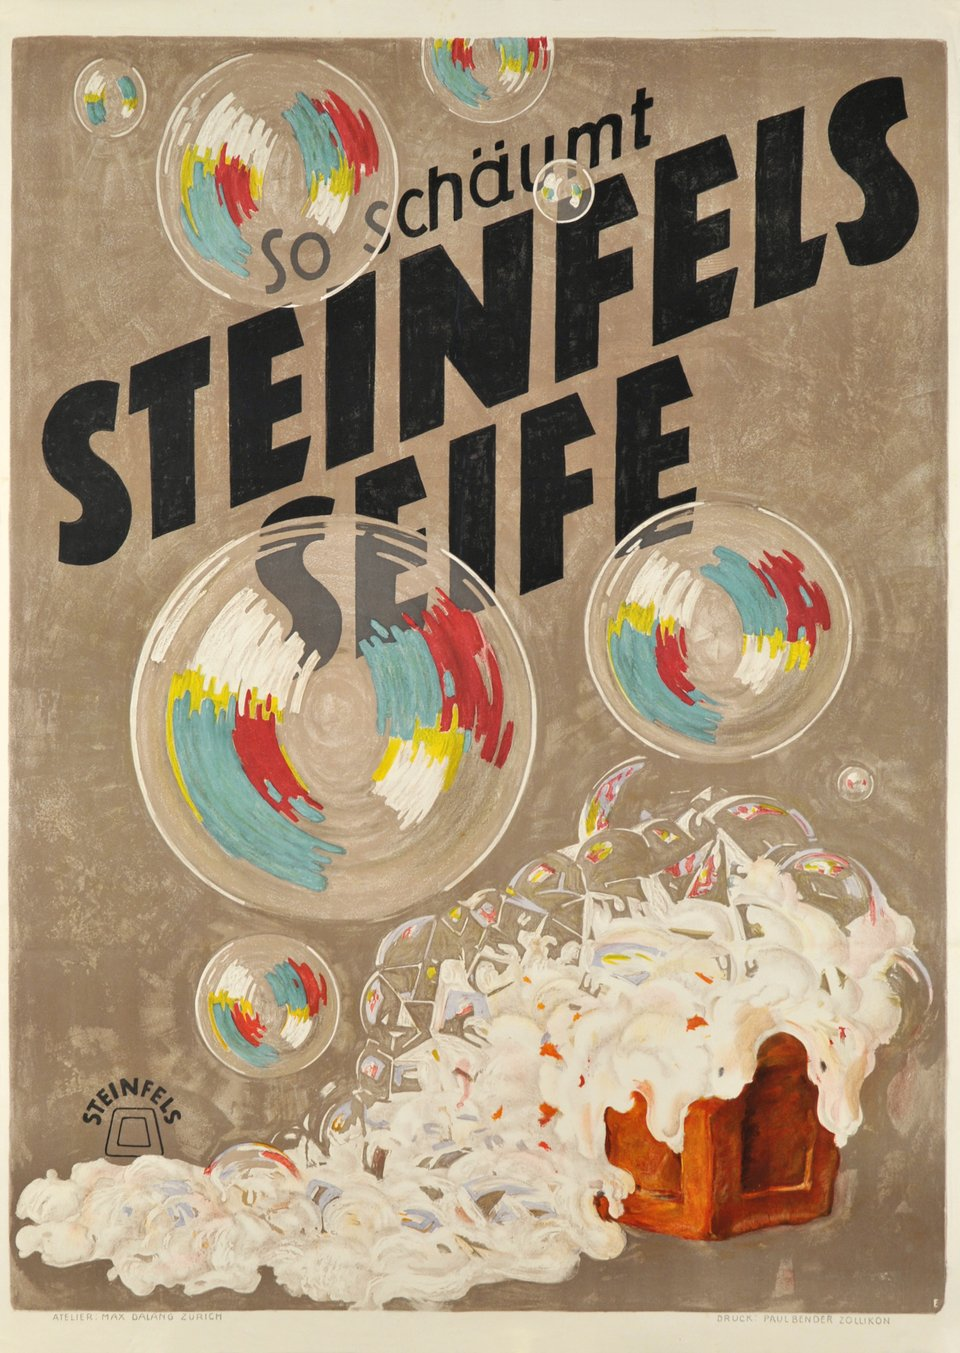 So schäumt Steinfels seife – Affiche ancienne – Max DALANG – 1920